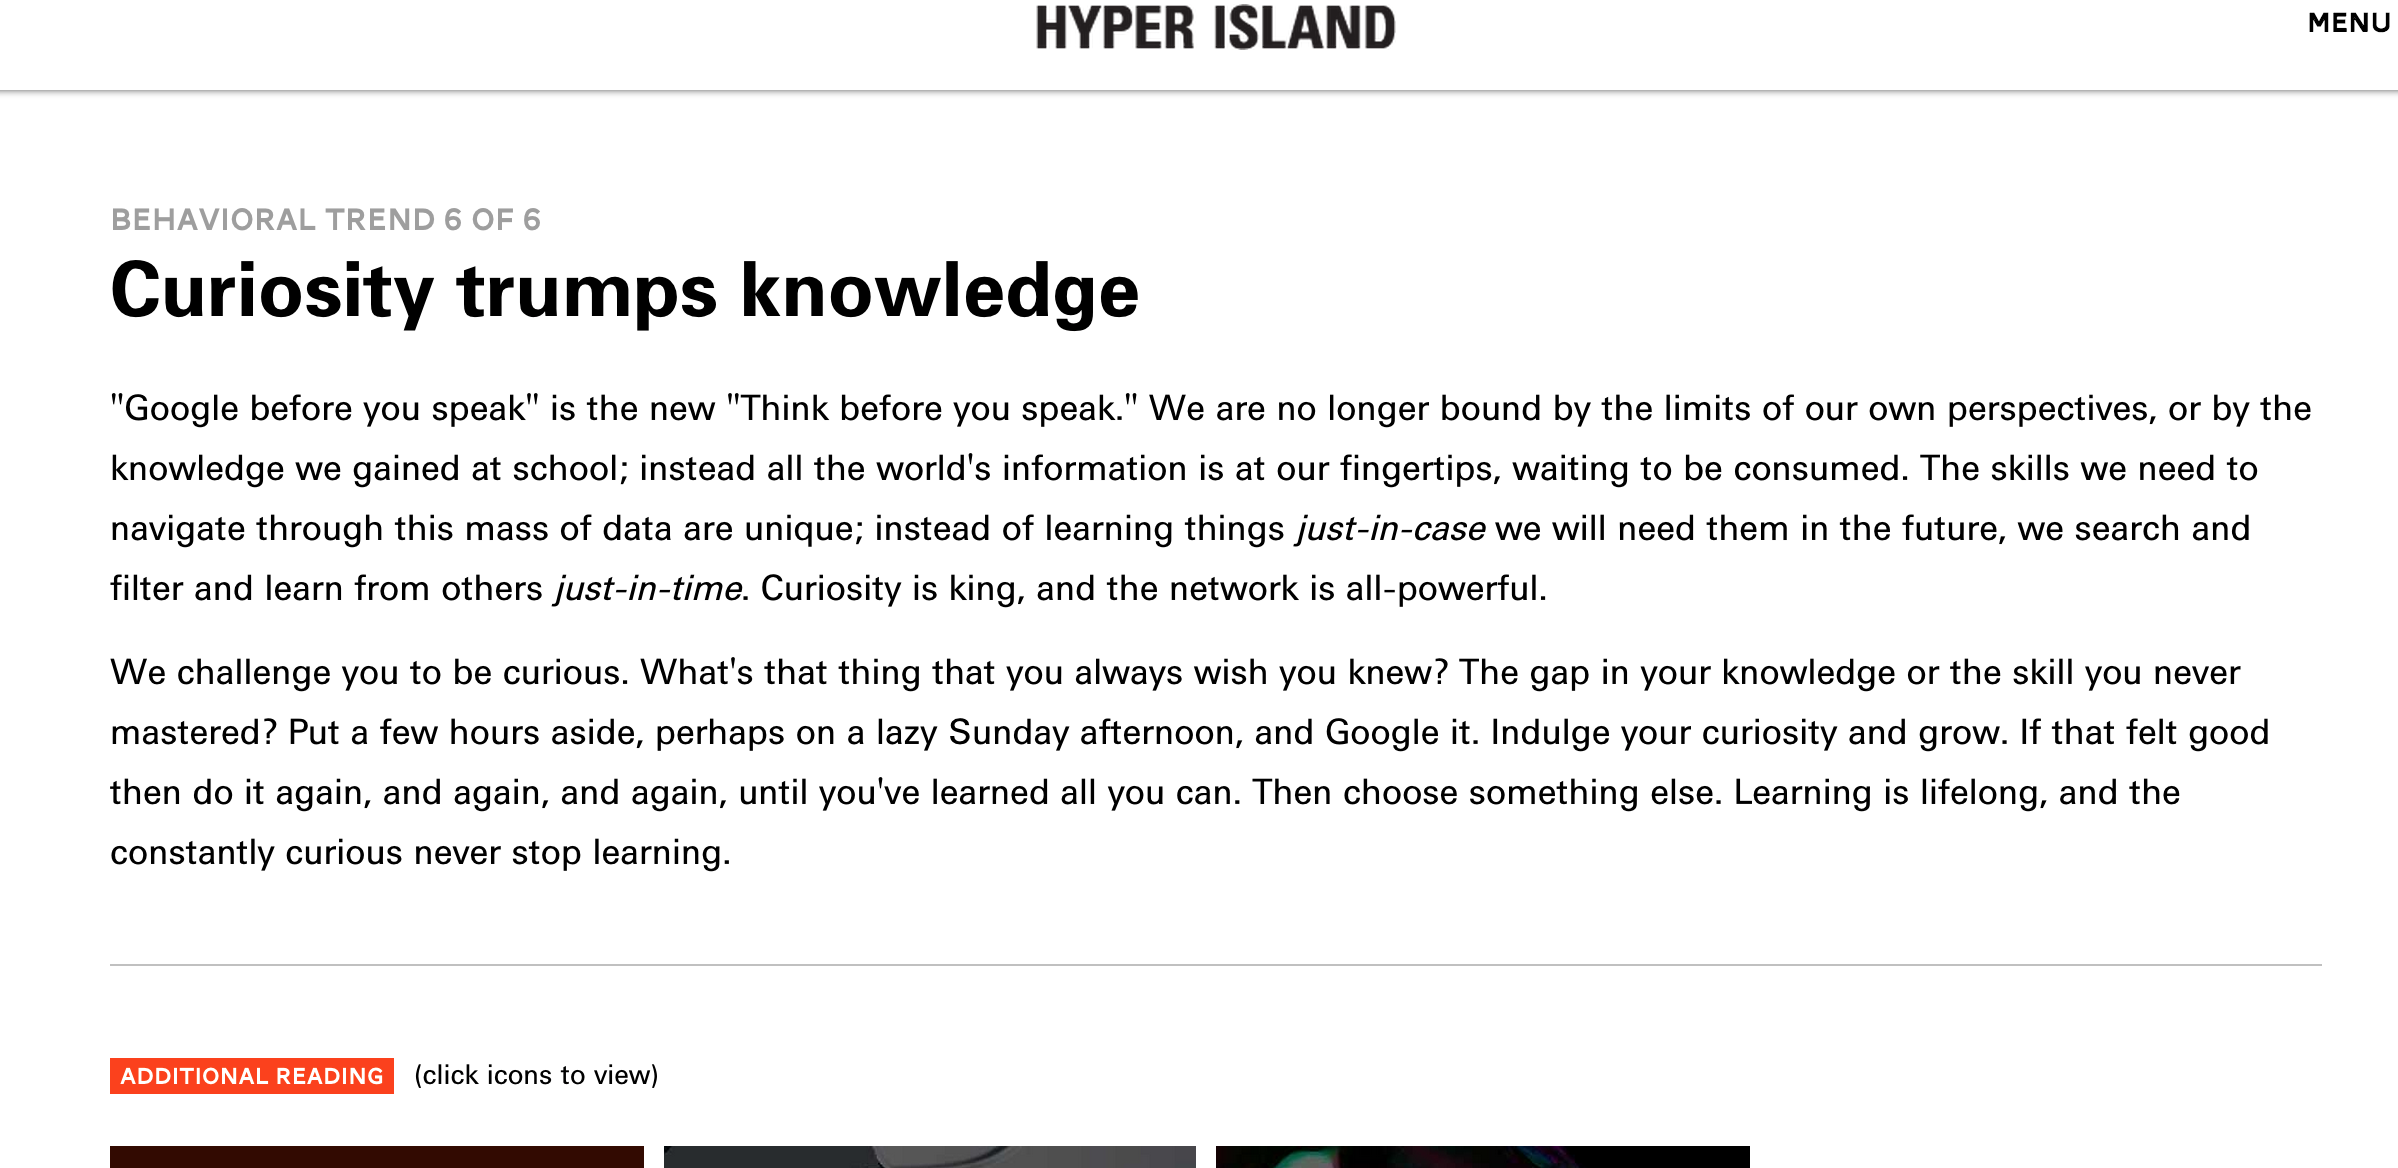 Screenshot from http://changes-of-tomorrow.hyperisland.com/behavioral.html